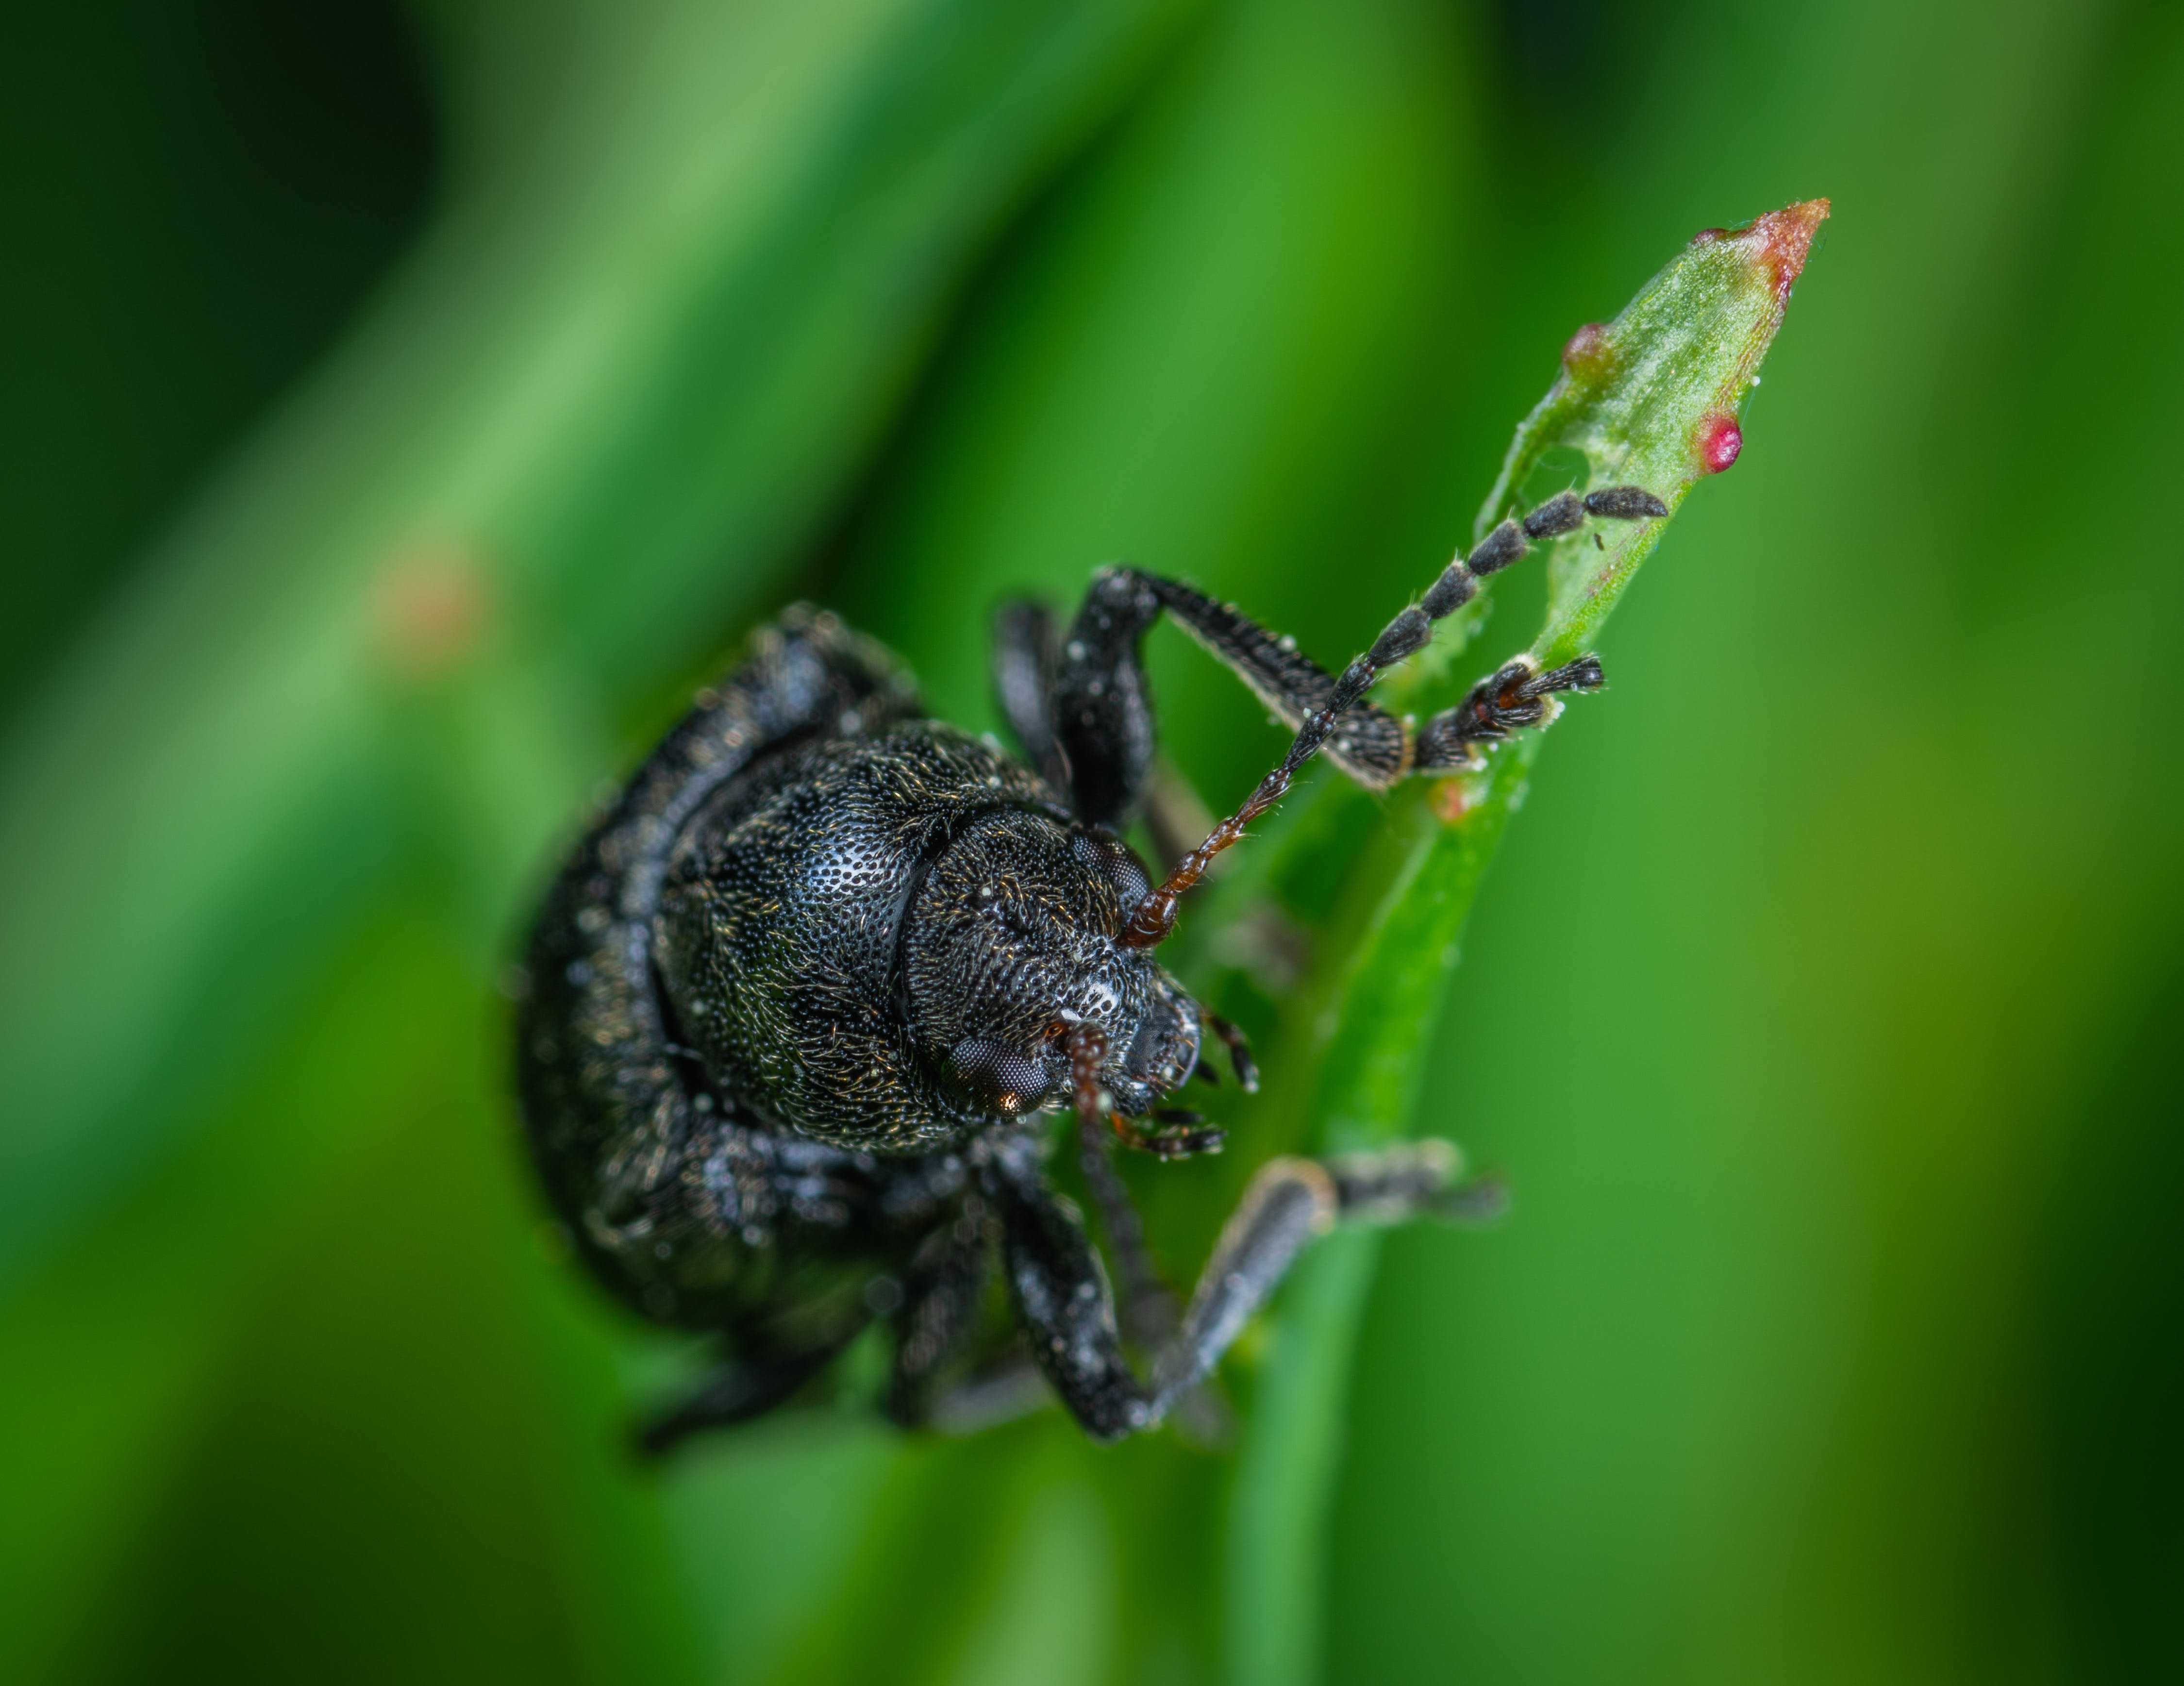 Close Up Photo of Black Dung Beetle on Green Leaf